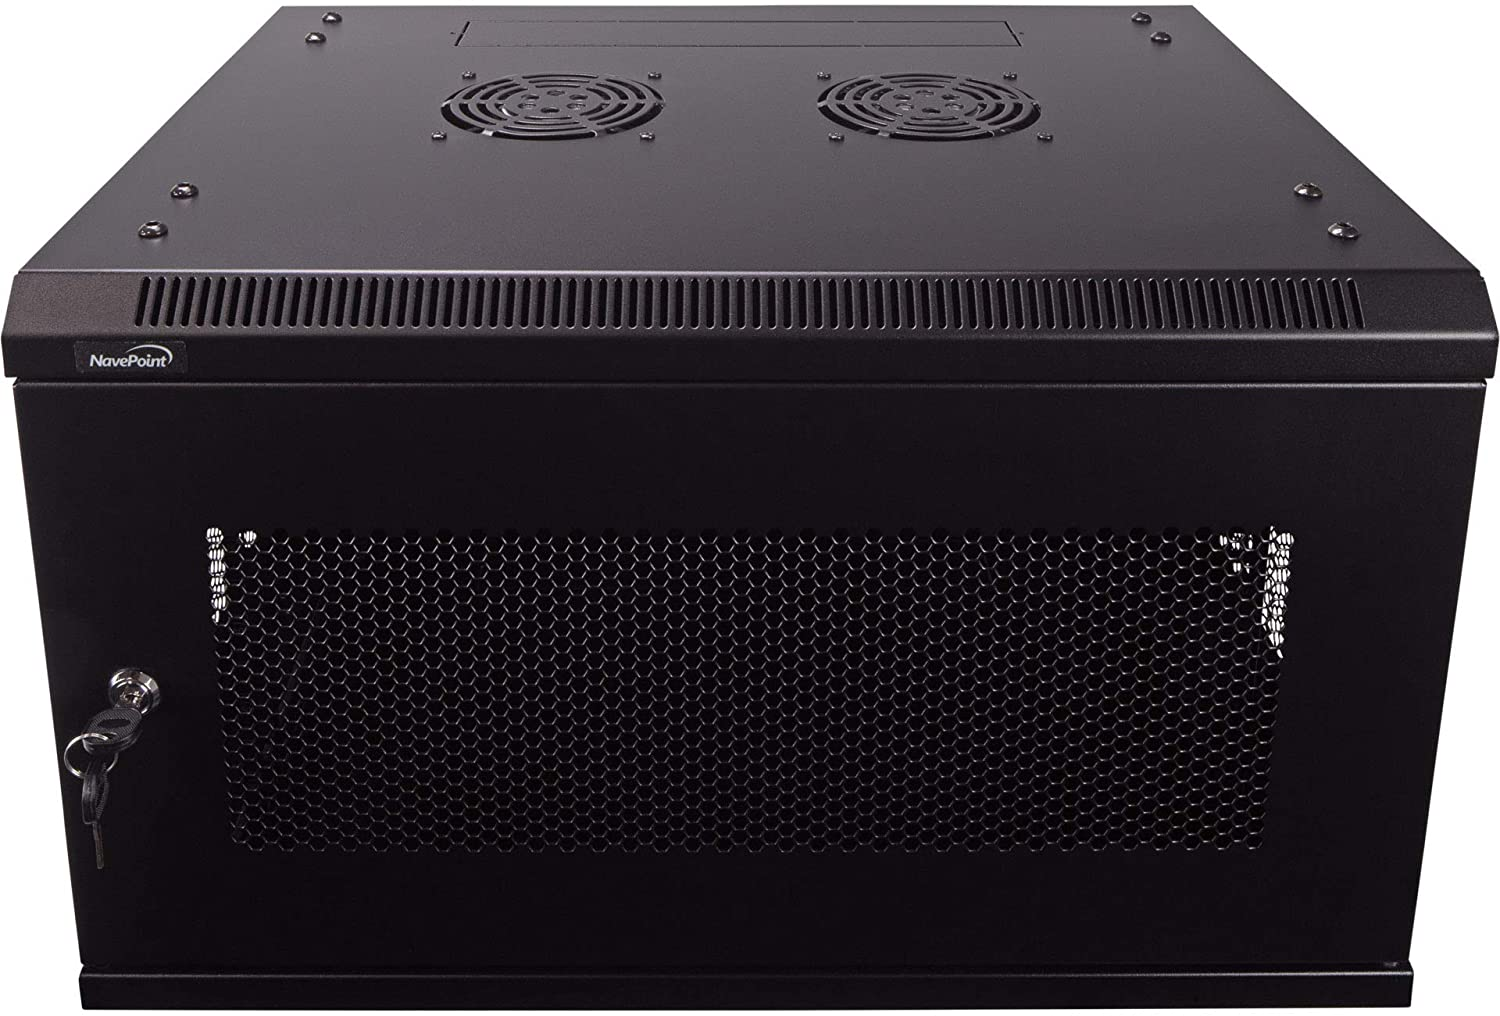 NavePoint 6U Deluxe IT Wallmount Cabinet Enclosure 19-Inch Server Network Rack with Locking Perforated Door 16-Inches Deep Black